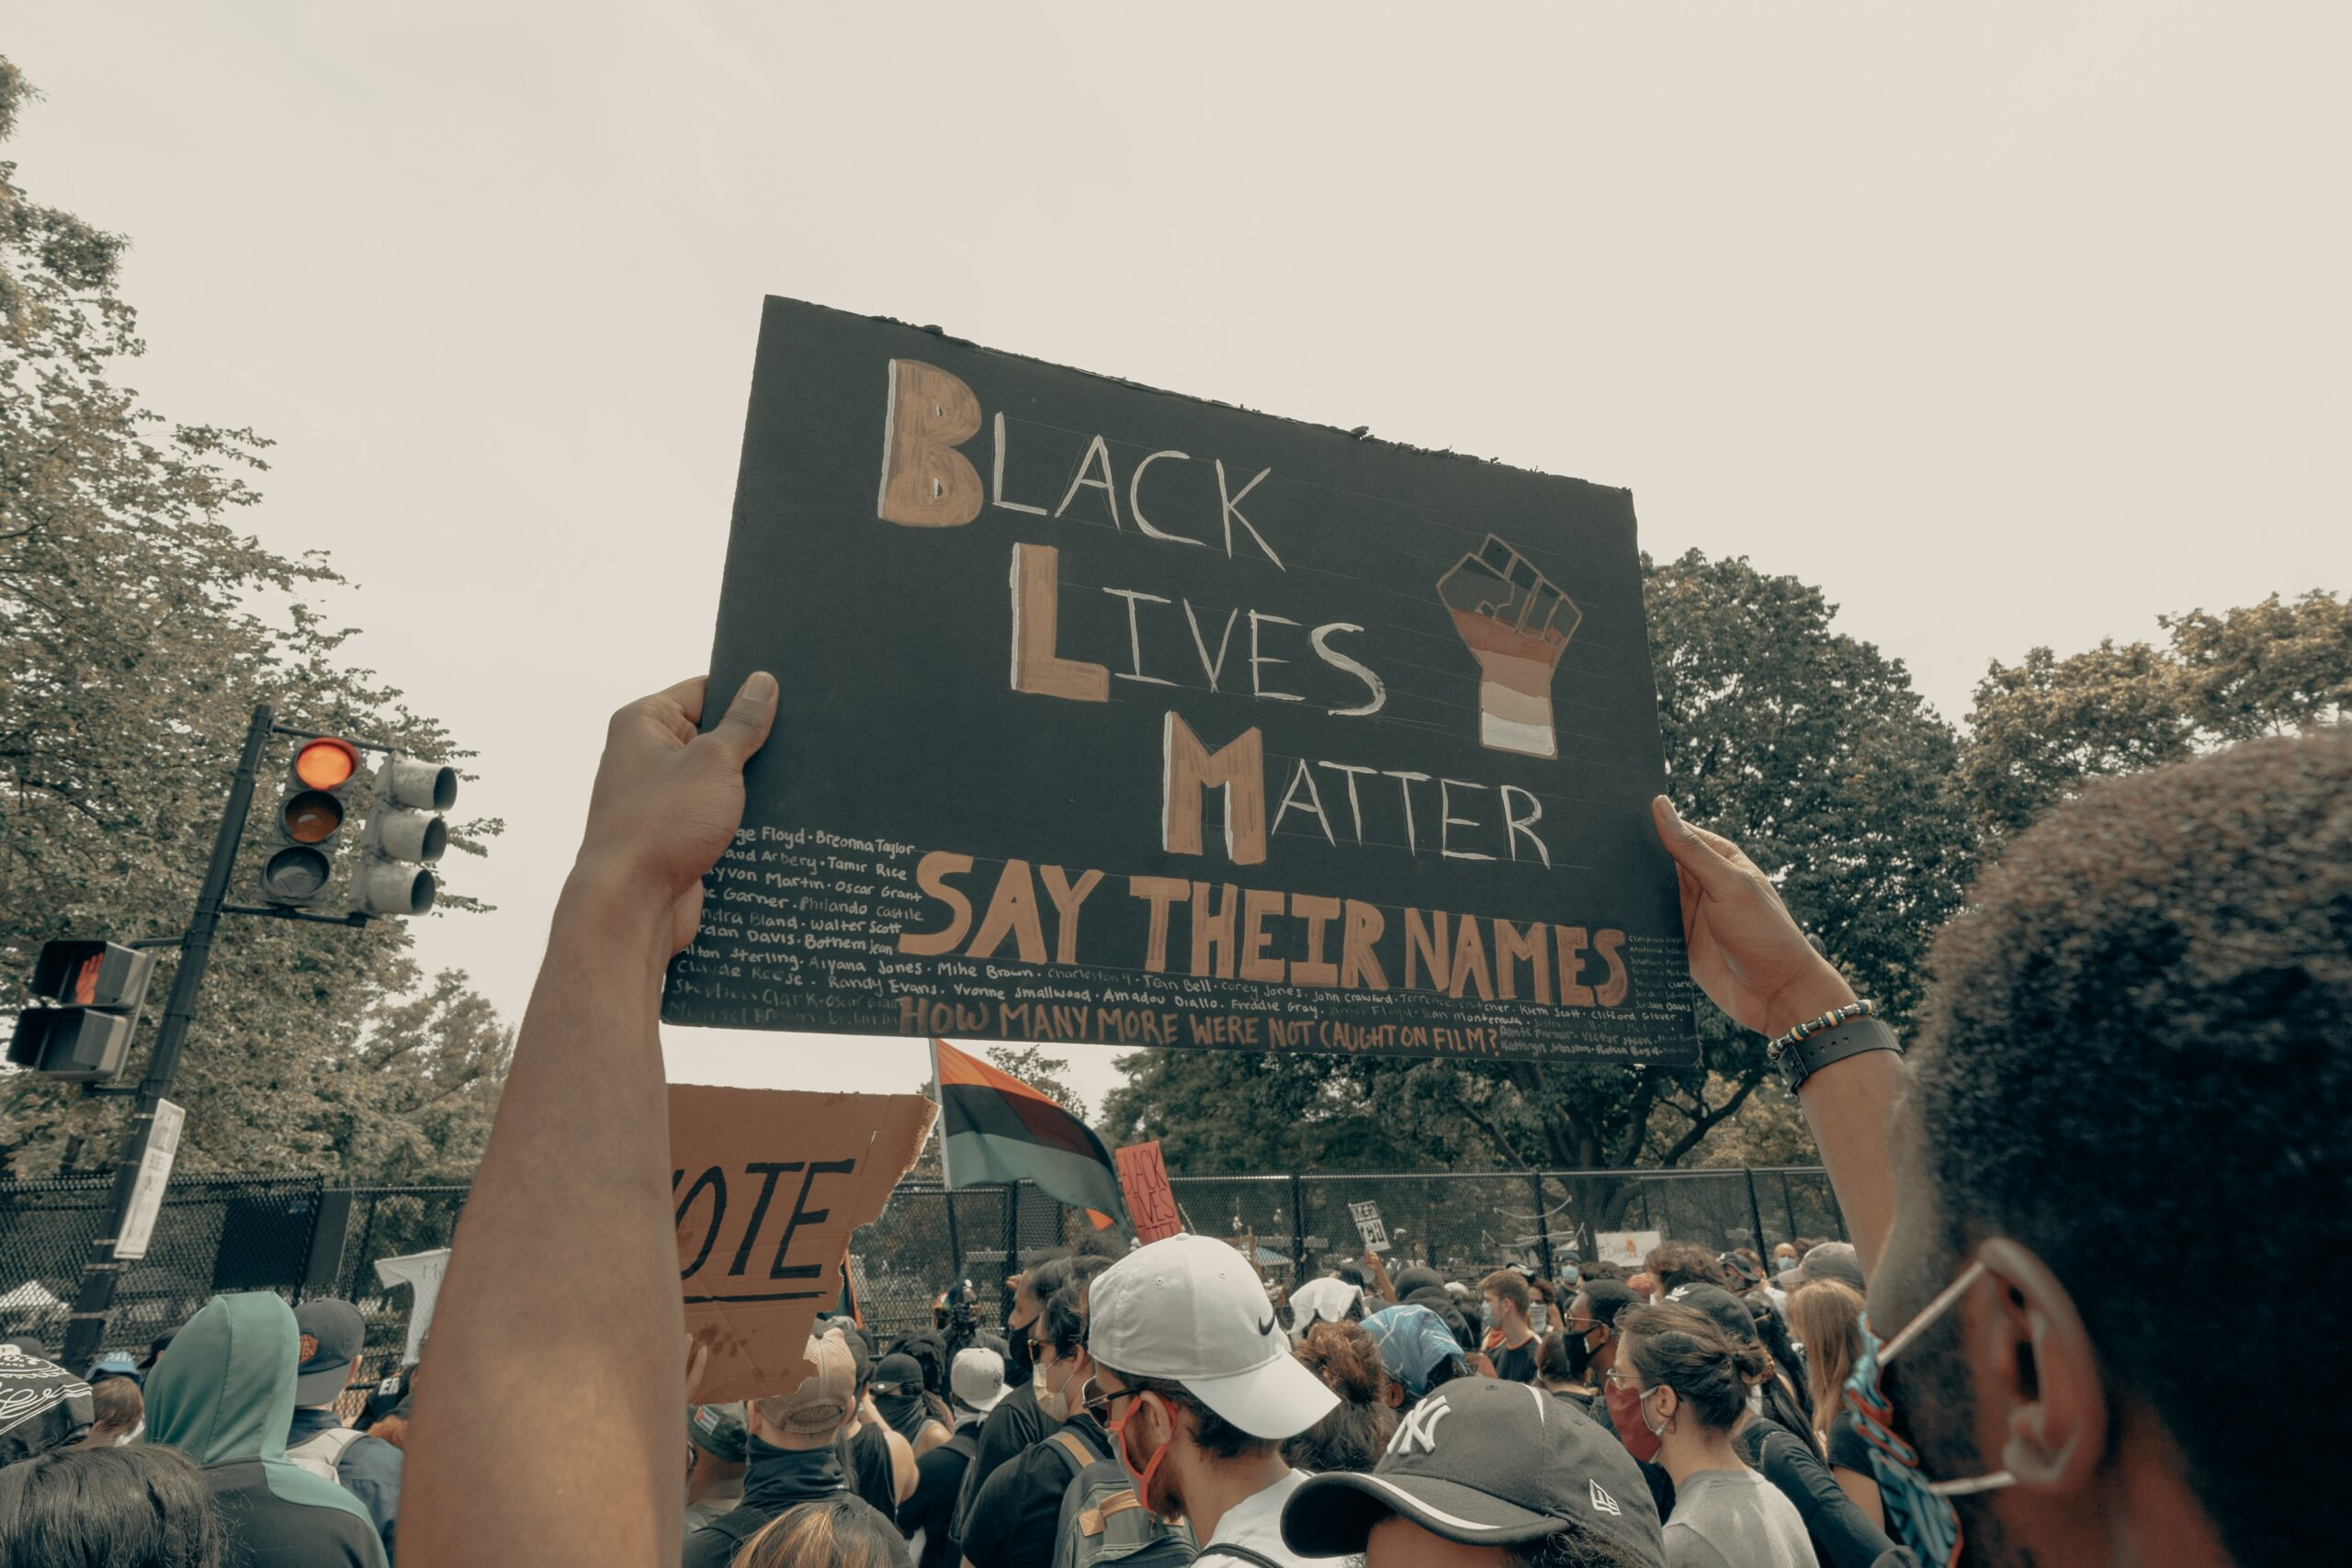 The Black Lives Matter Movement and Police Brutality